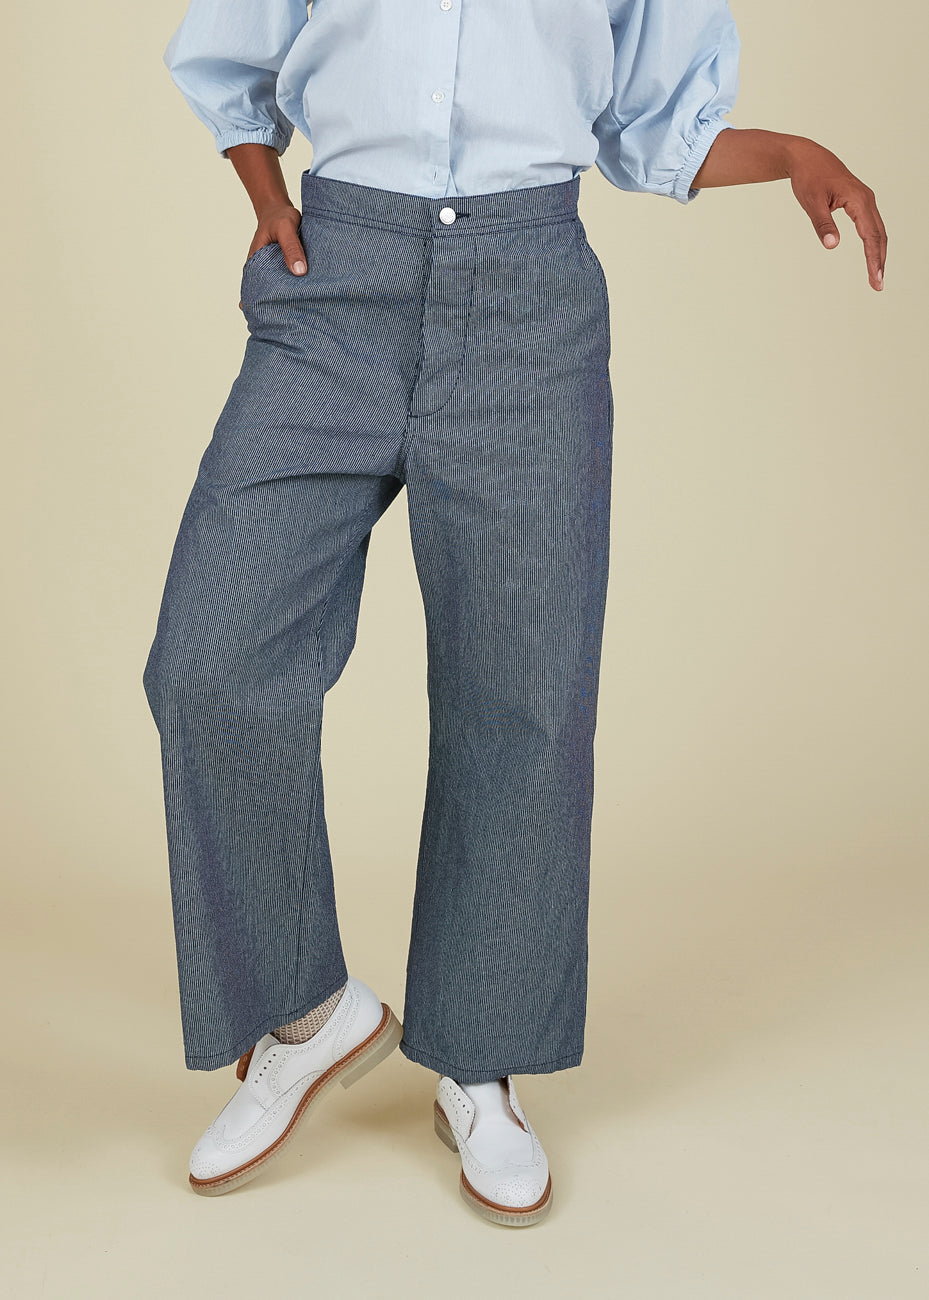 Echappees Belles Ignace Solid Pantalon